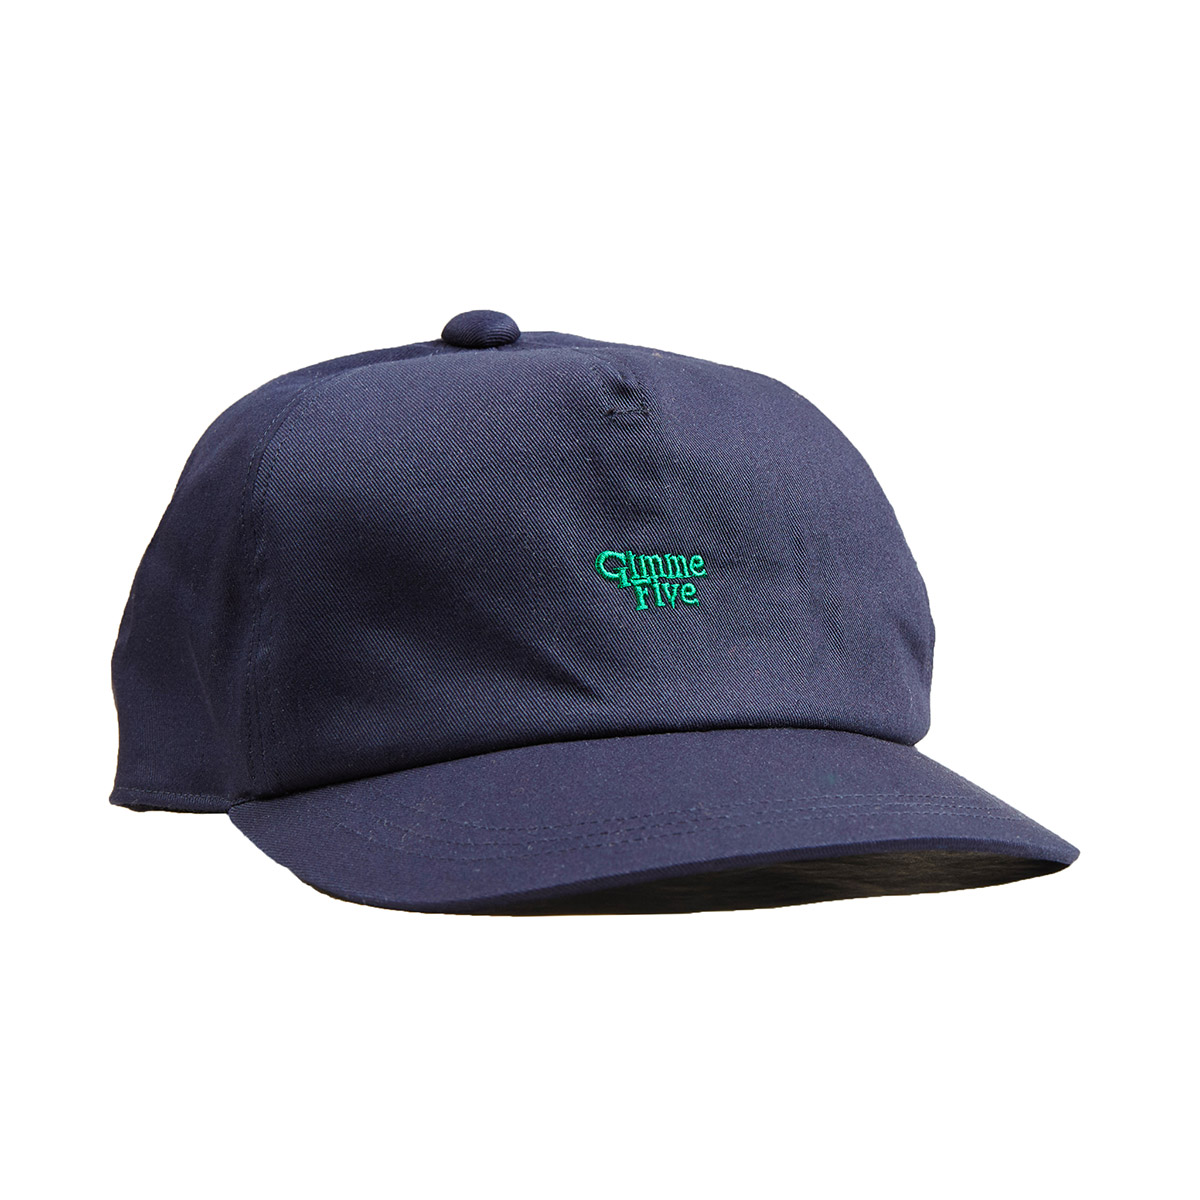 Gimme_5_japan_CAP-Blue-front.jpg